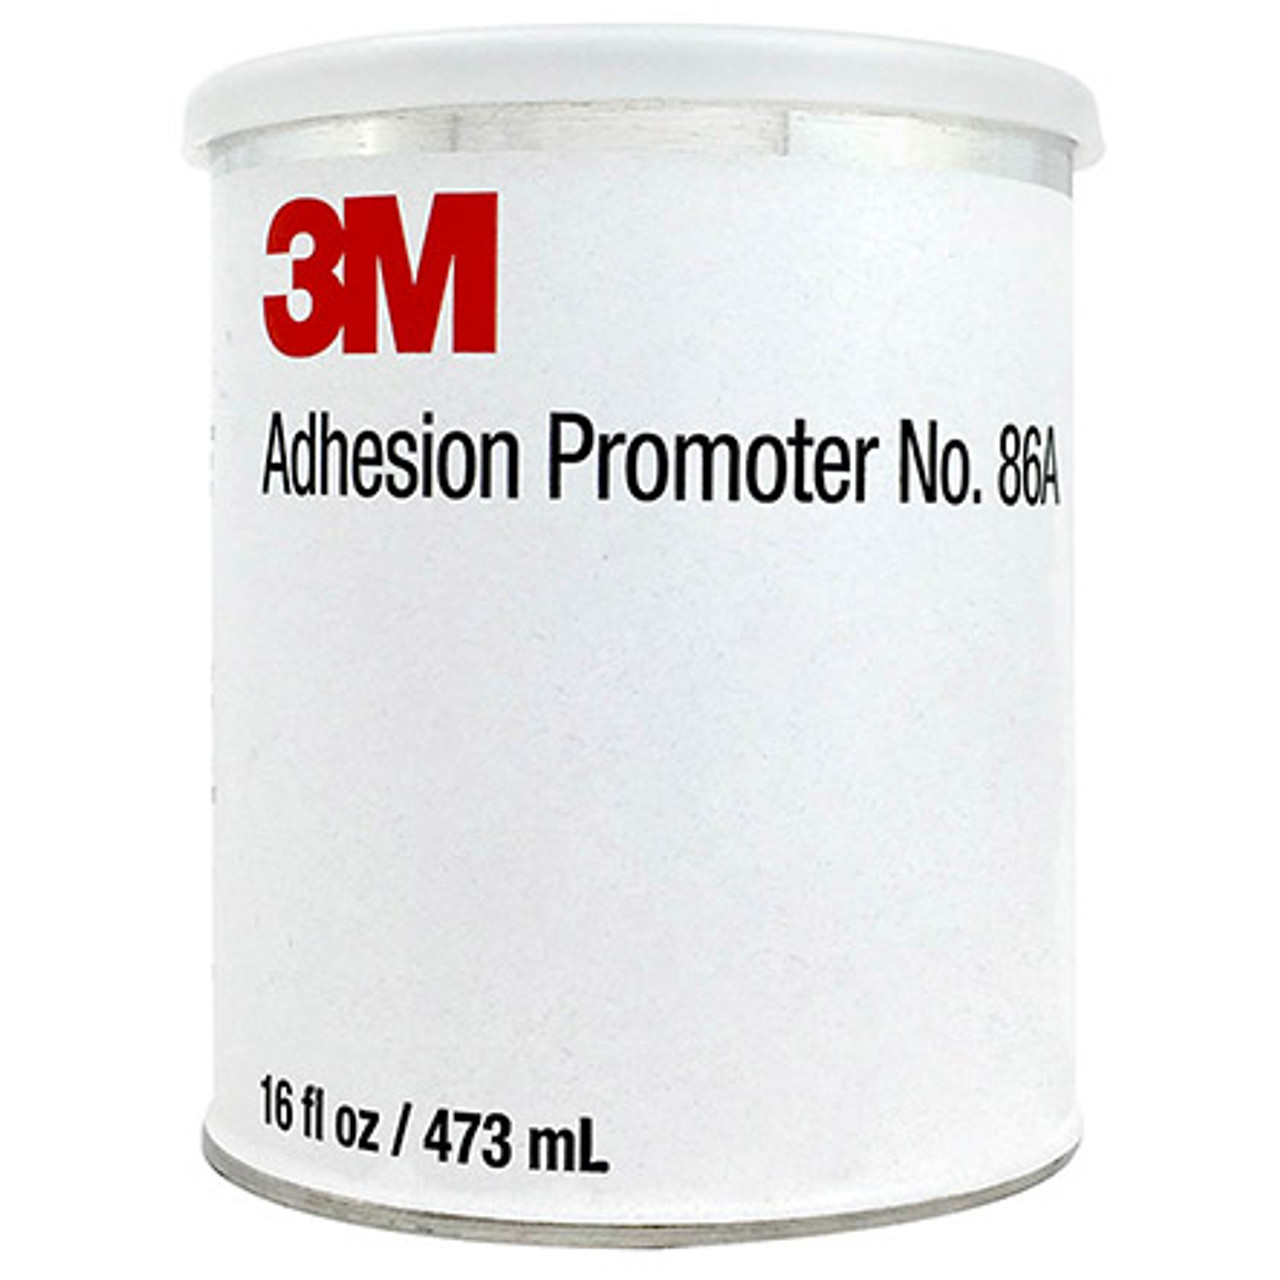 """3M 021200-31592 Transparent 86A Adhesive Adhesion Promoter - Pint Can Part#: 021200-31592by 3M  This liquid """"primer"""" is designed for use with 3M Polyurethane Protective Tapes and Boots as well as other acrylic adhesives. 3M 86A enhances initial adhesion to certain types of surfaces, such as polyurethane paint, epoxy primers, or epoxy composites. It is not intended for use where acrylic adhesive would be in direct contact with aluminum, stainless steel, carbon, steel or glass. Approvals/References/Specs  Hartzell Propeller PN: A-6741-124 Hartzell PN/Spec#: A-6741-124"""